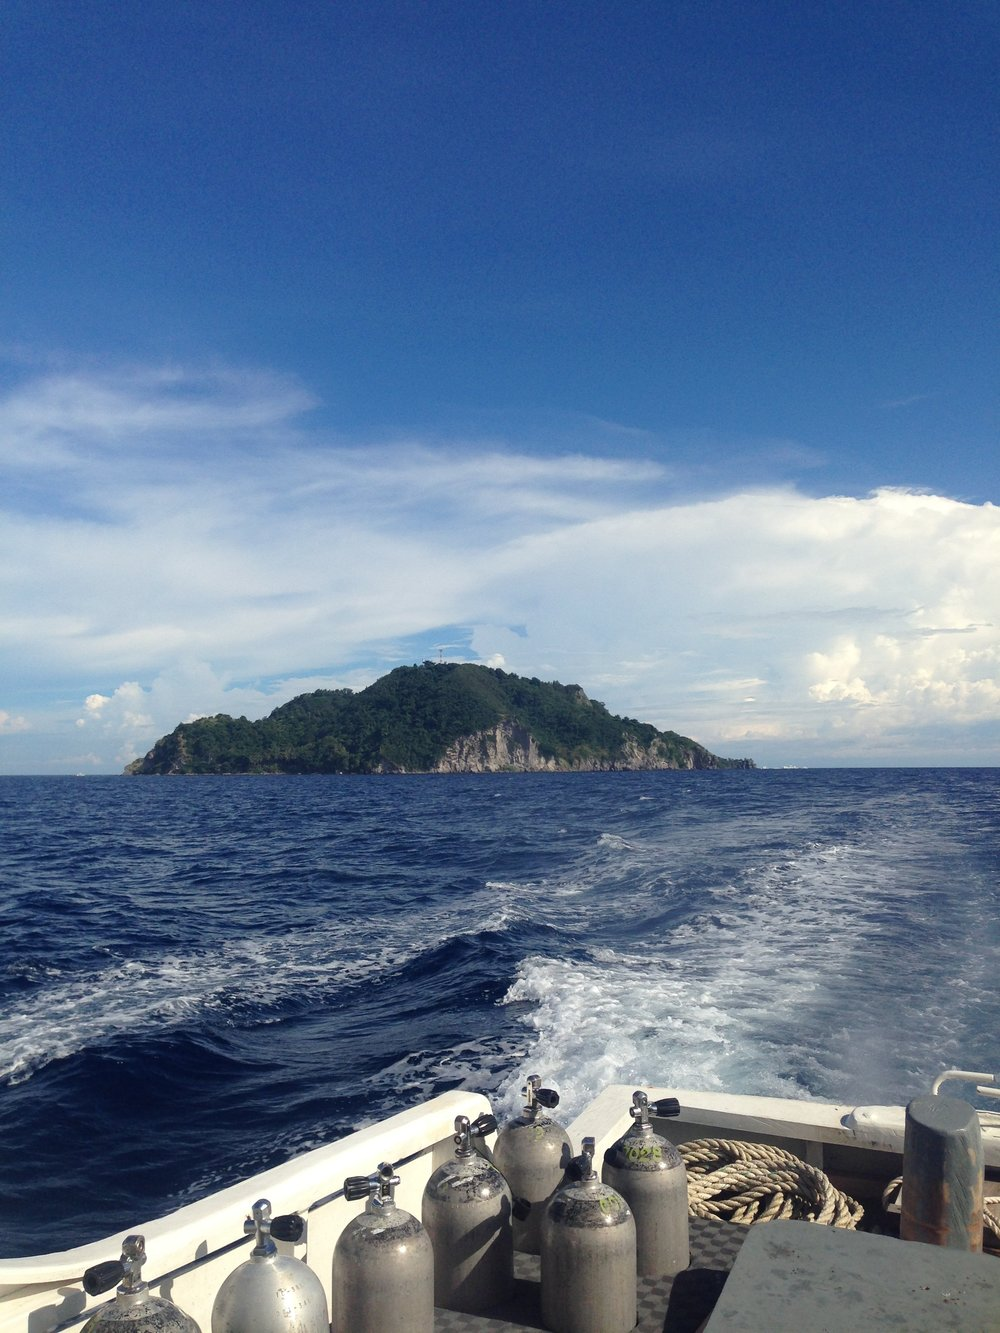 Leaving Apo island, Philippines after a day of diving